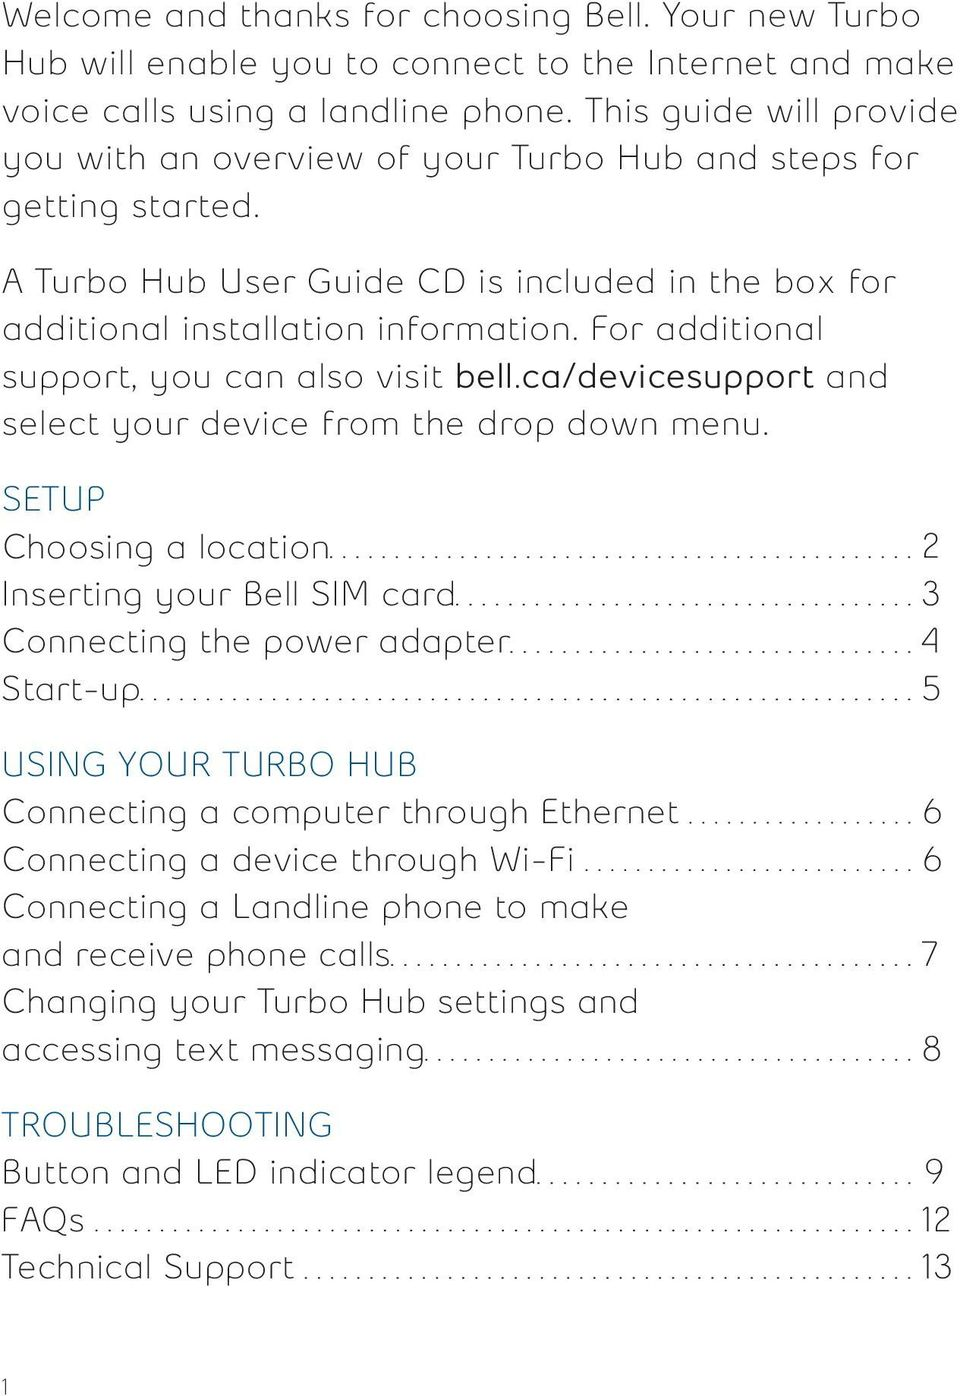 For additional support, you can also visit bell.ca/devicesupport and select your device from the drop down menu.